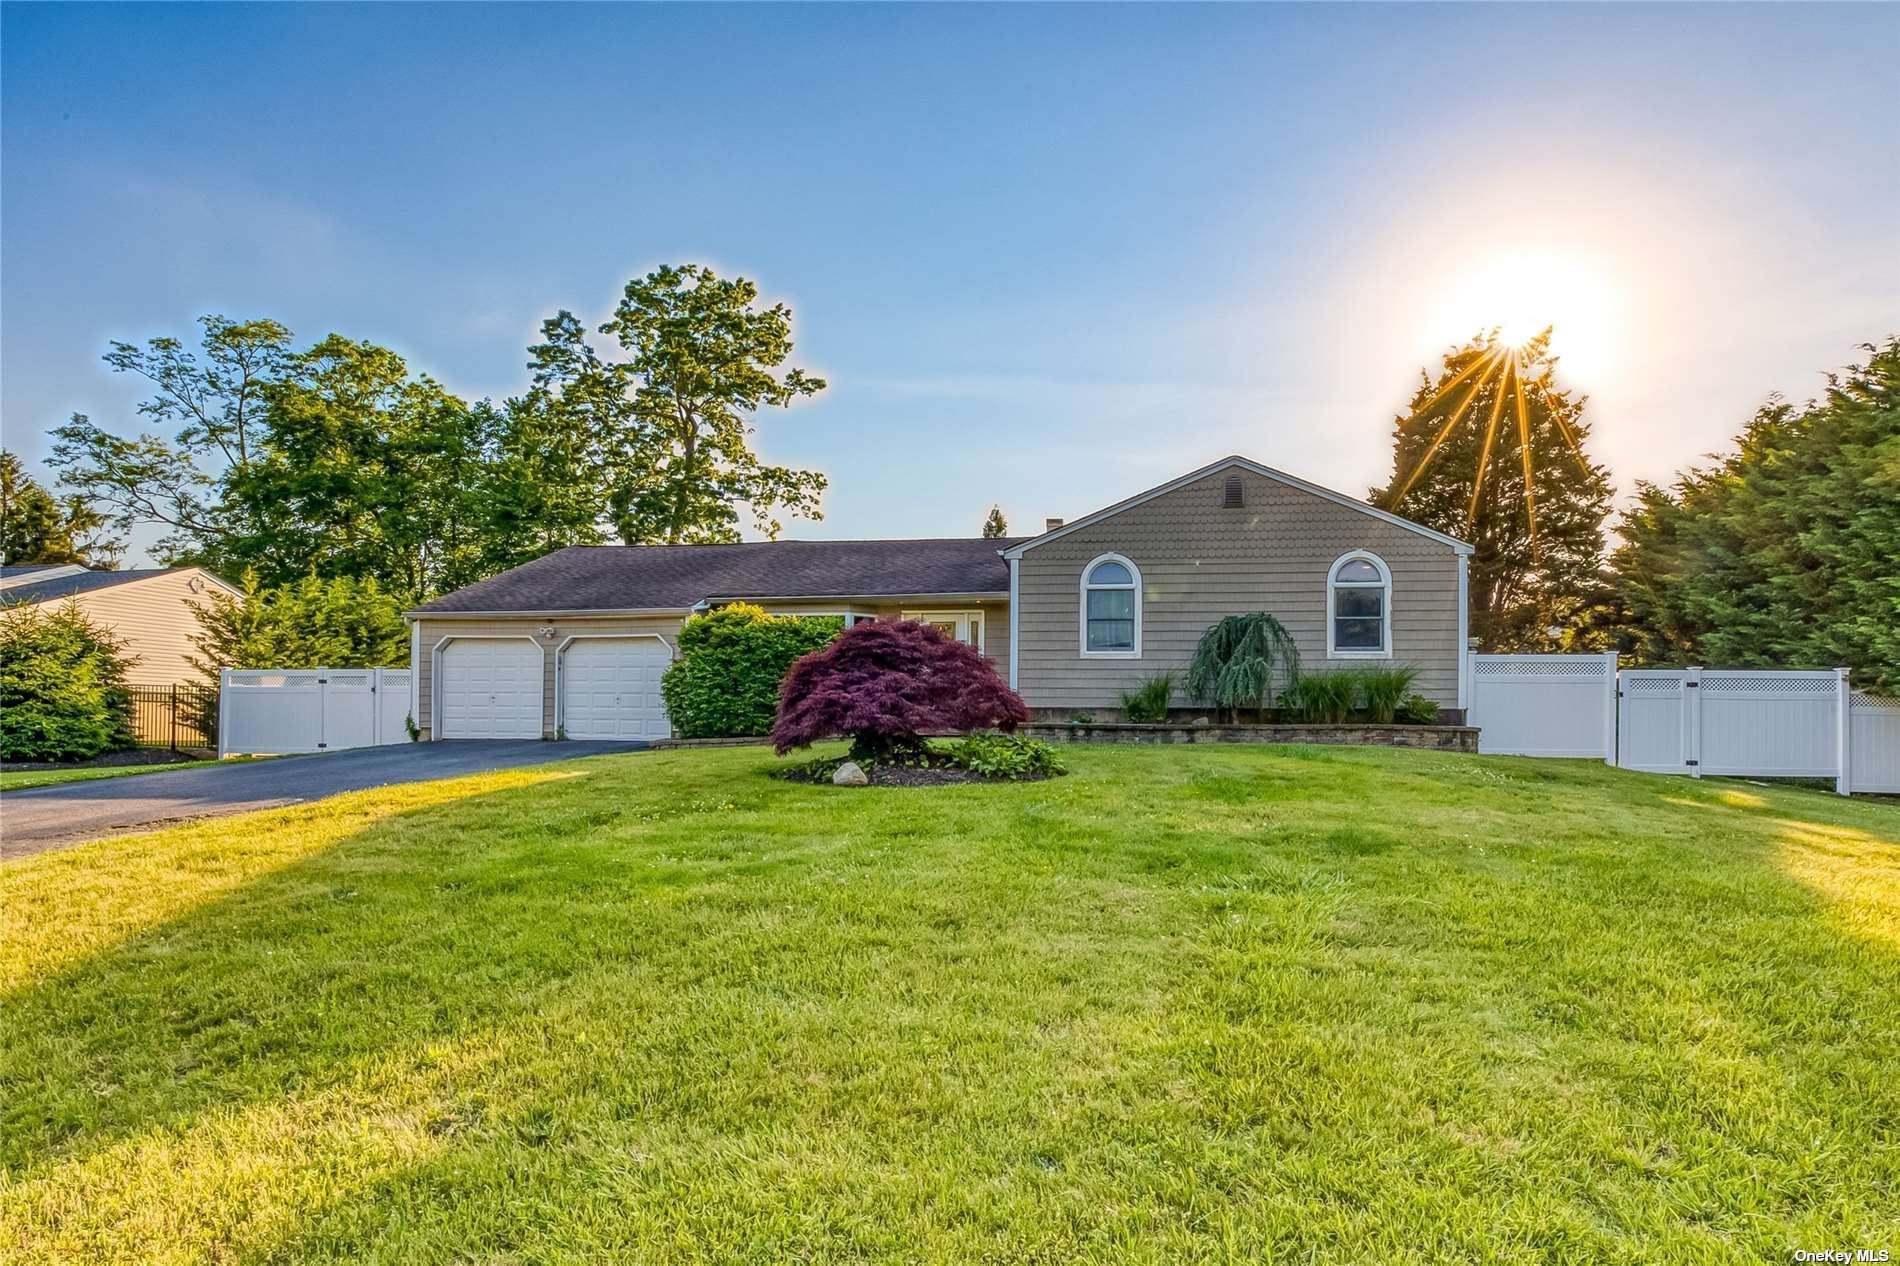 17 Tower Place, Smithtown, NY 11787 - MLS#: 3321385